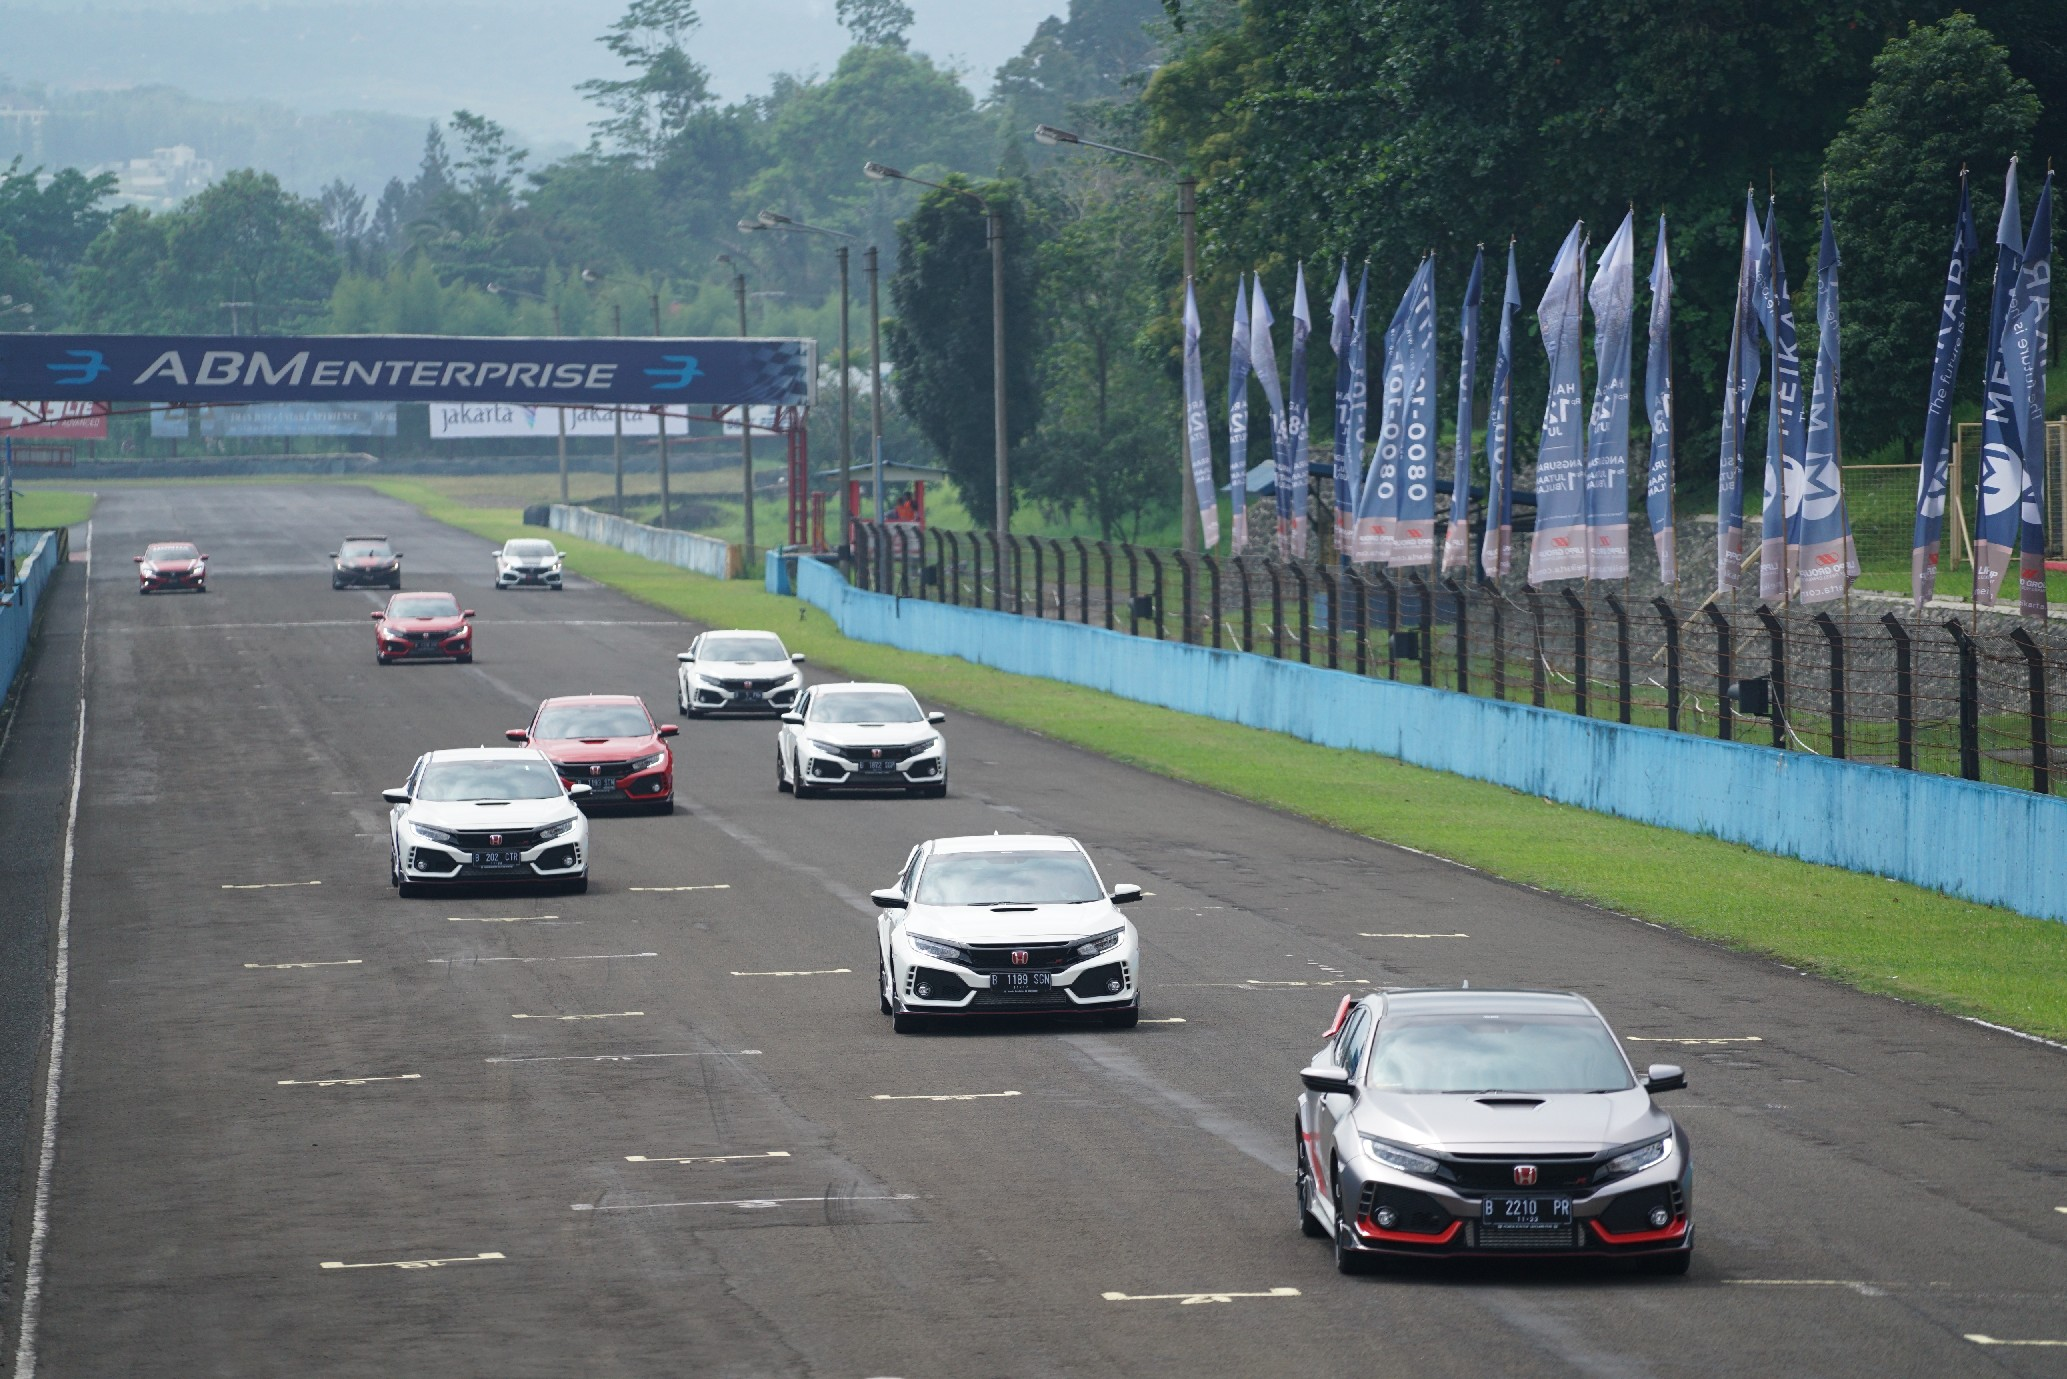 Circuit Sentul : Sentul international circuit simracingworld